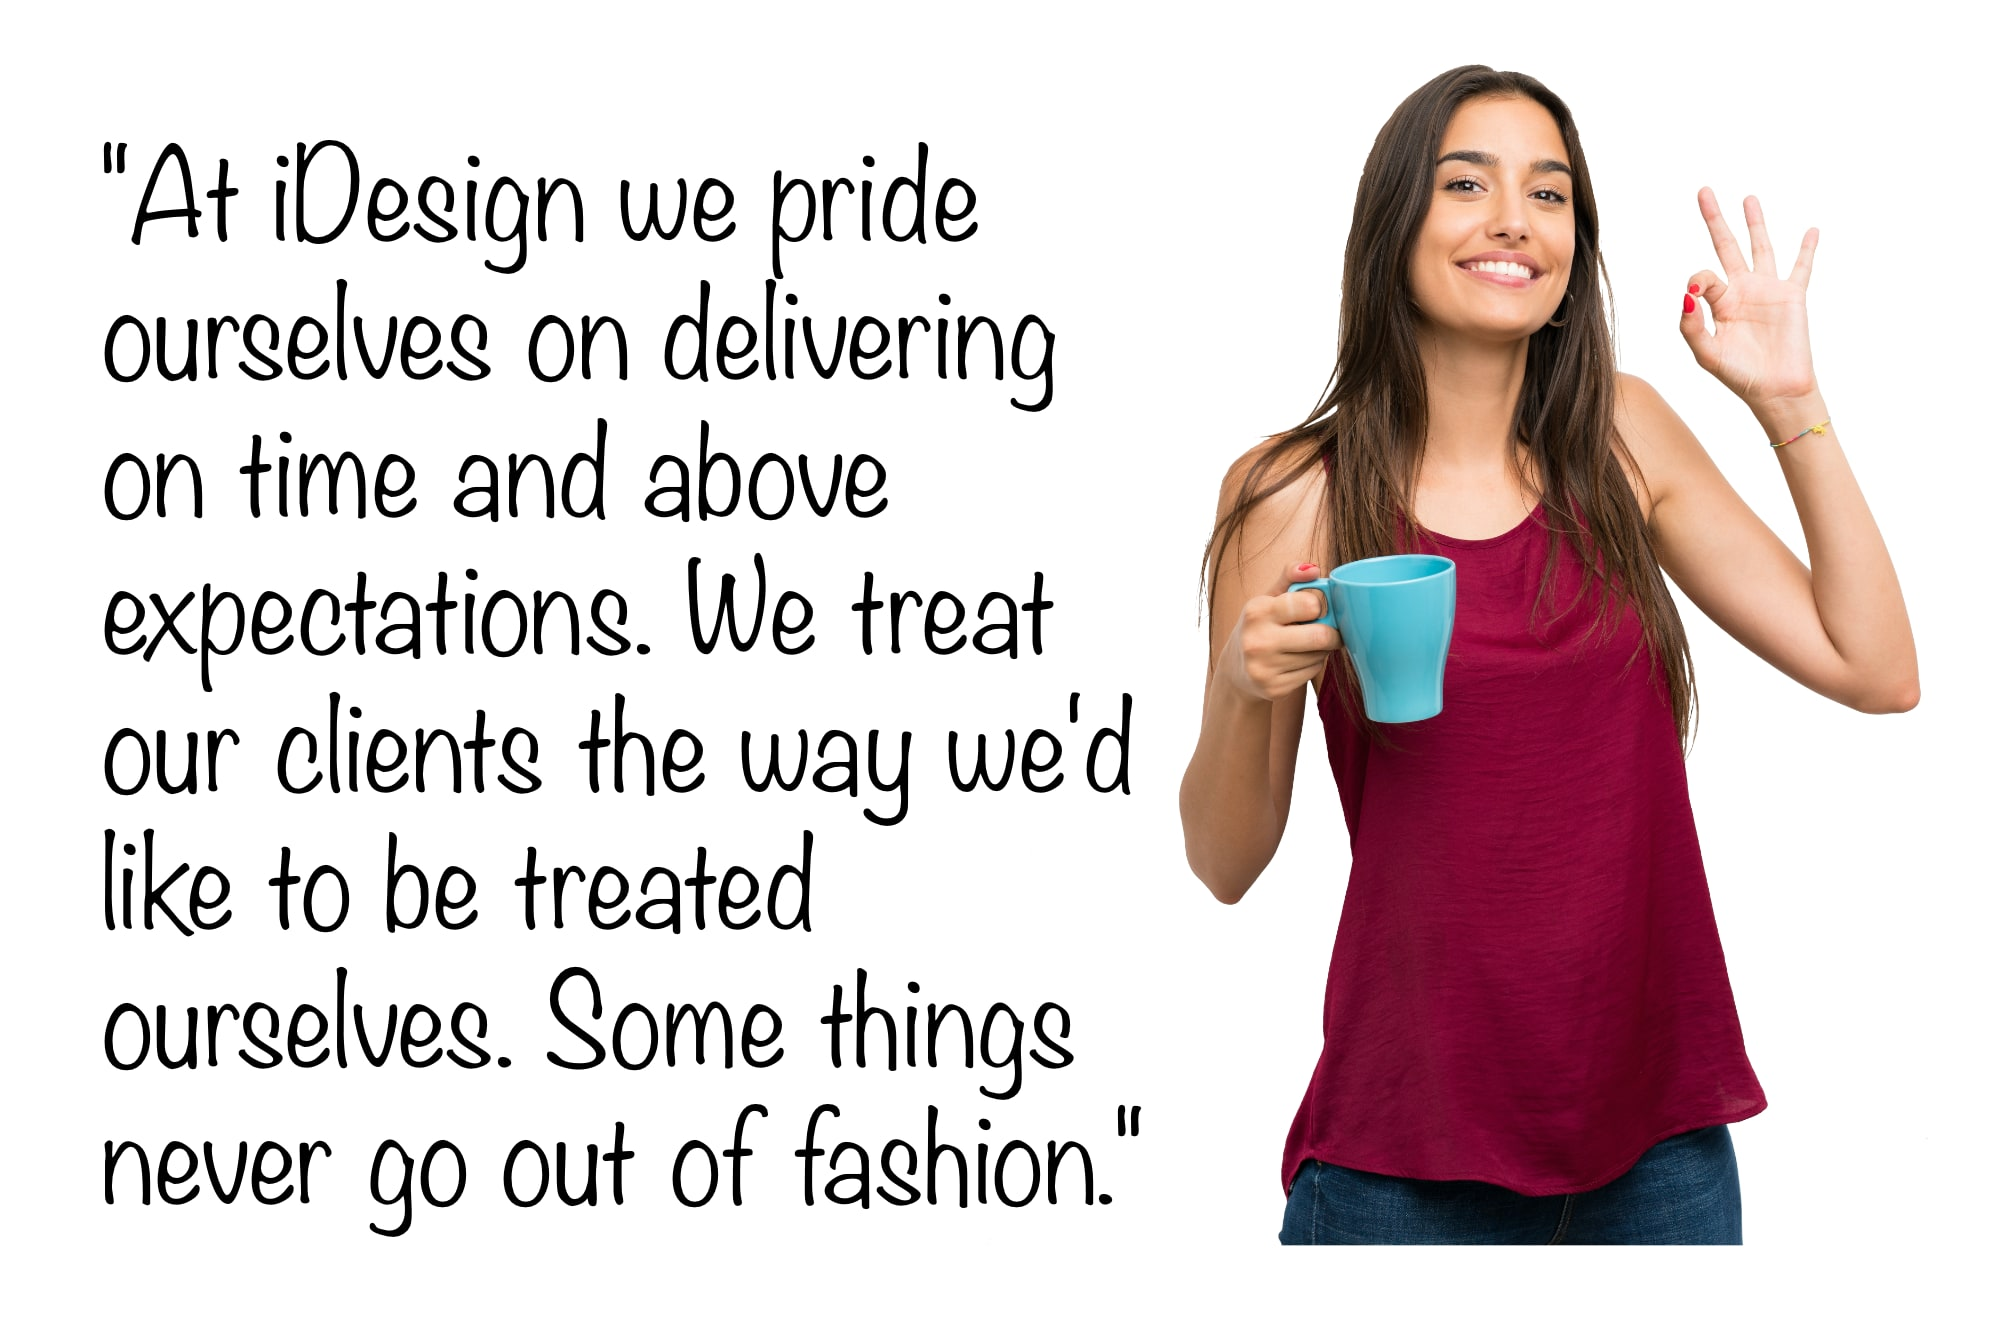 At iDesign we exceed your expectation